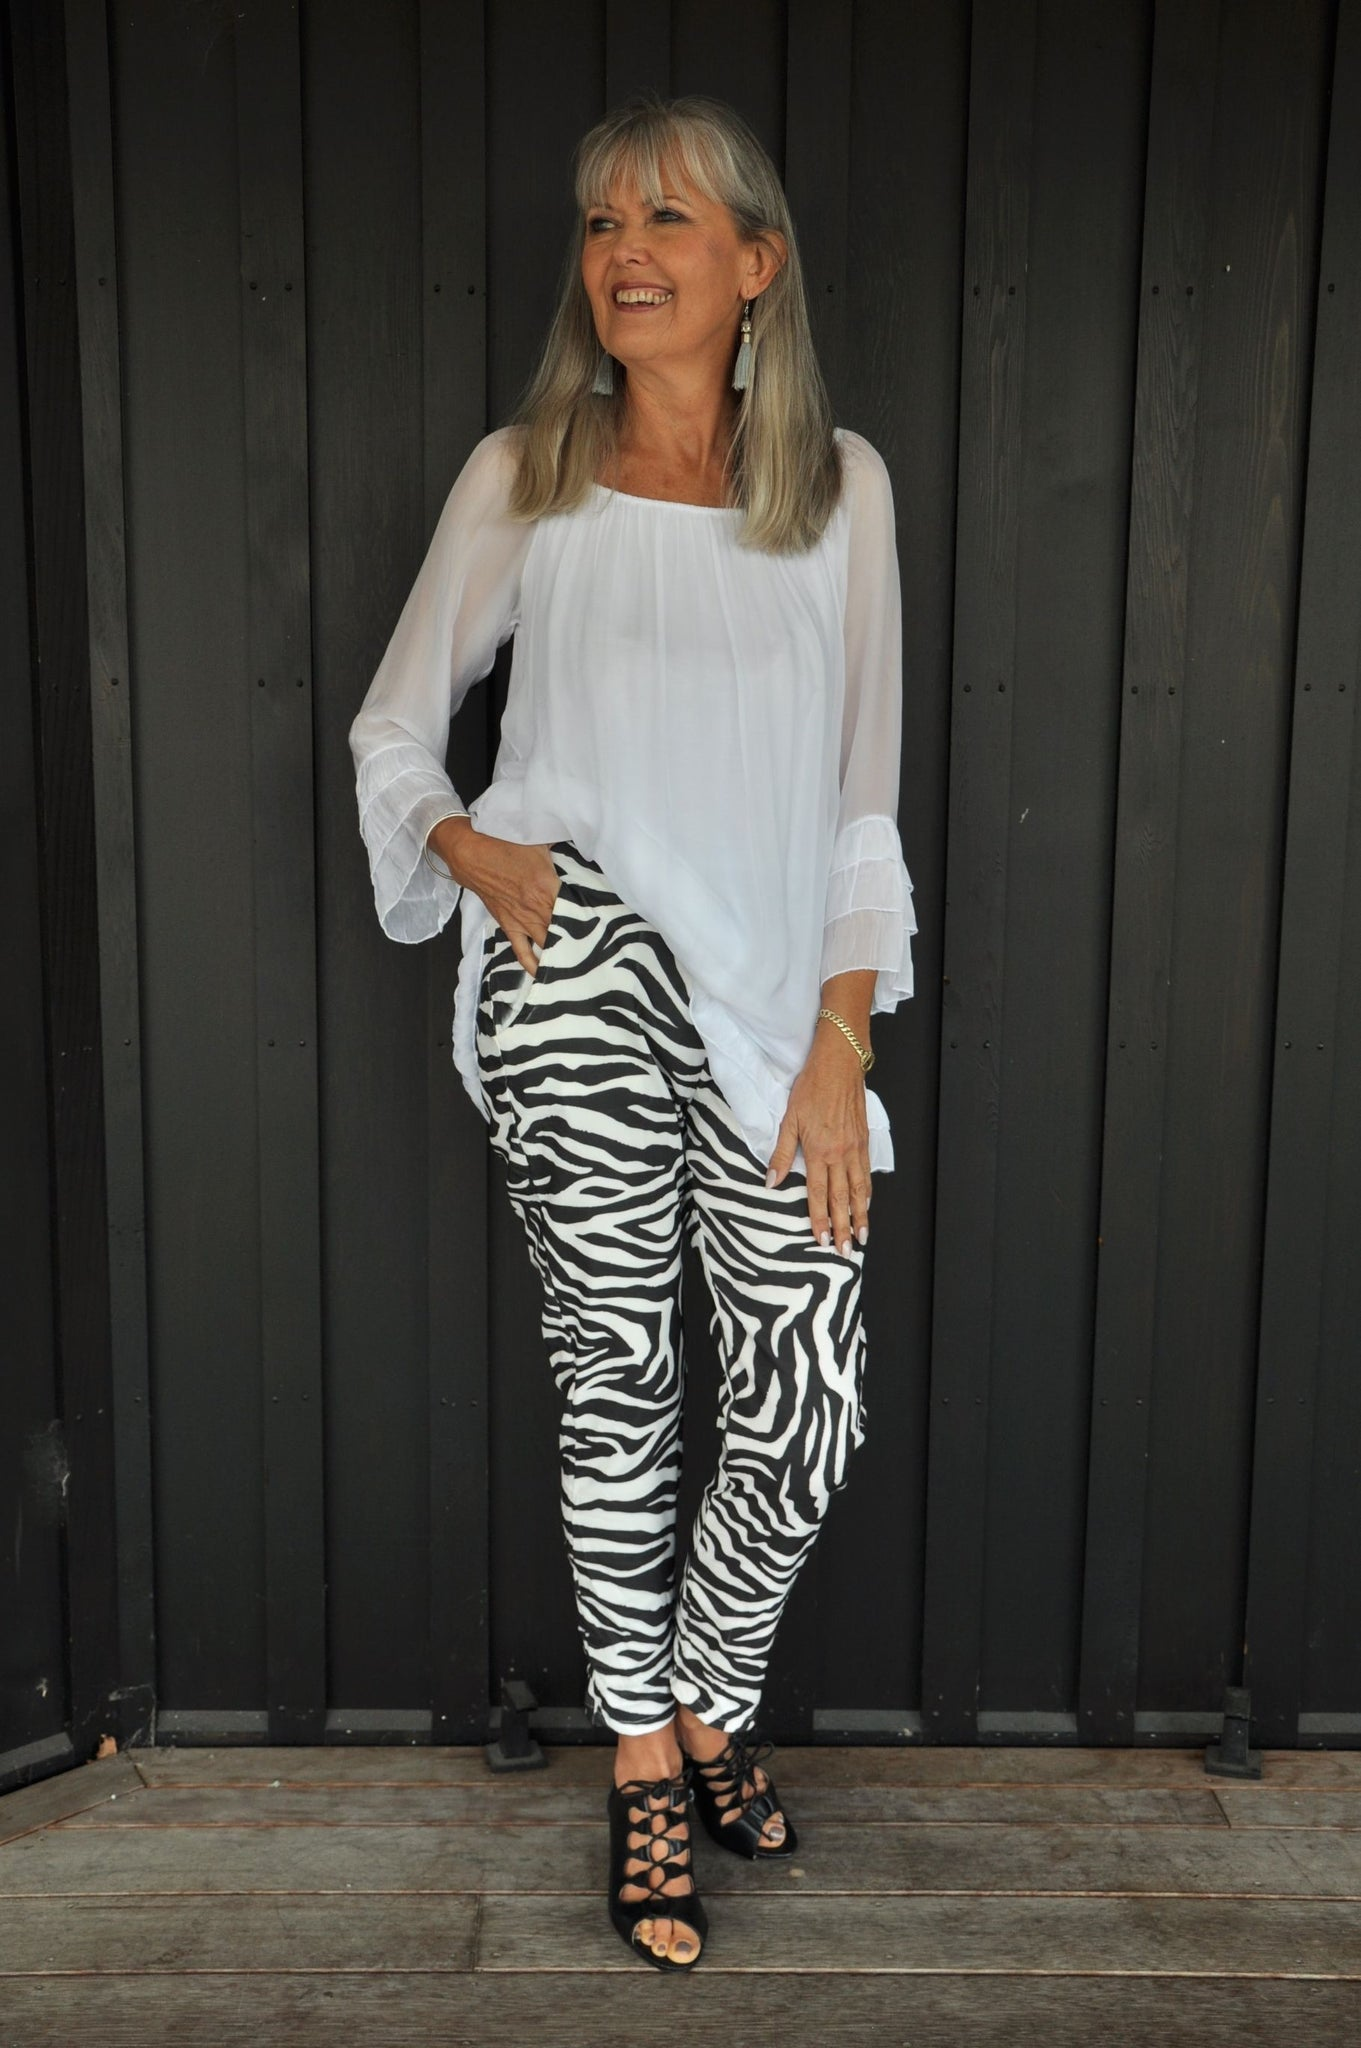 Zebra Print Stretch Cotton Capri Pants